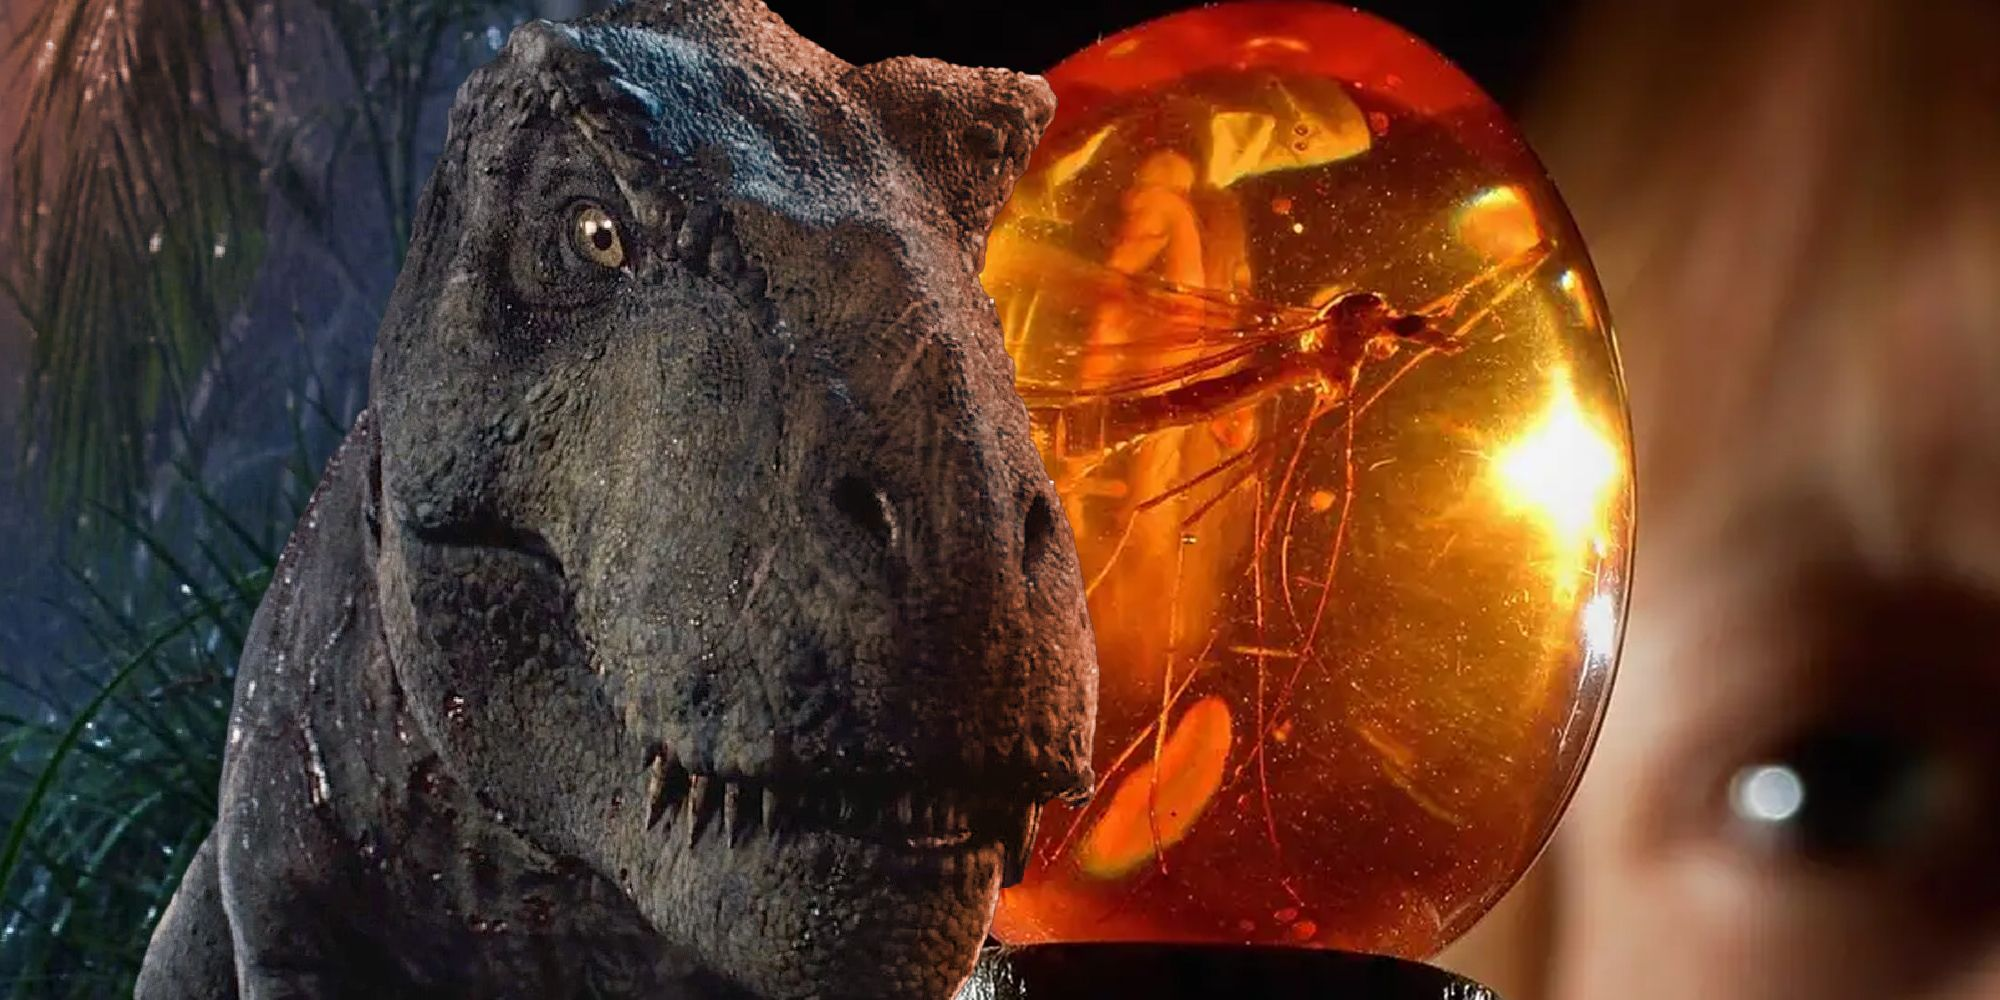 Jurassic World 3 Is A Science Thriller That Explores Genetic Power